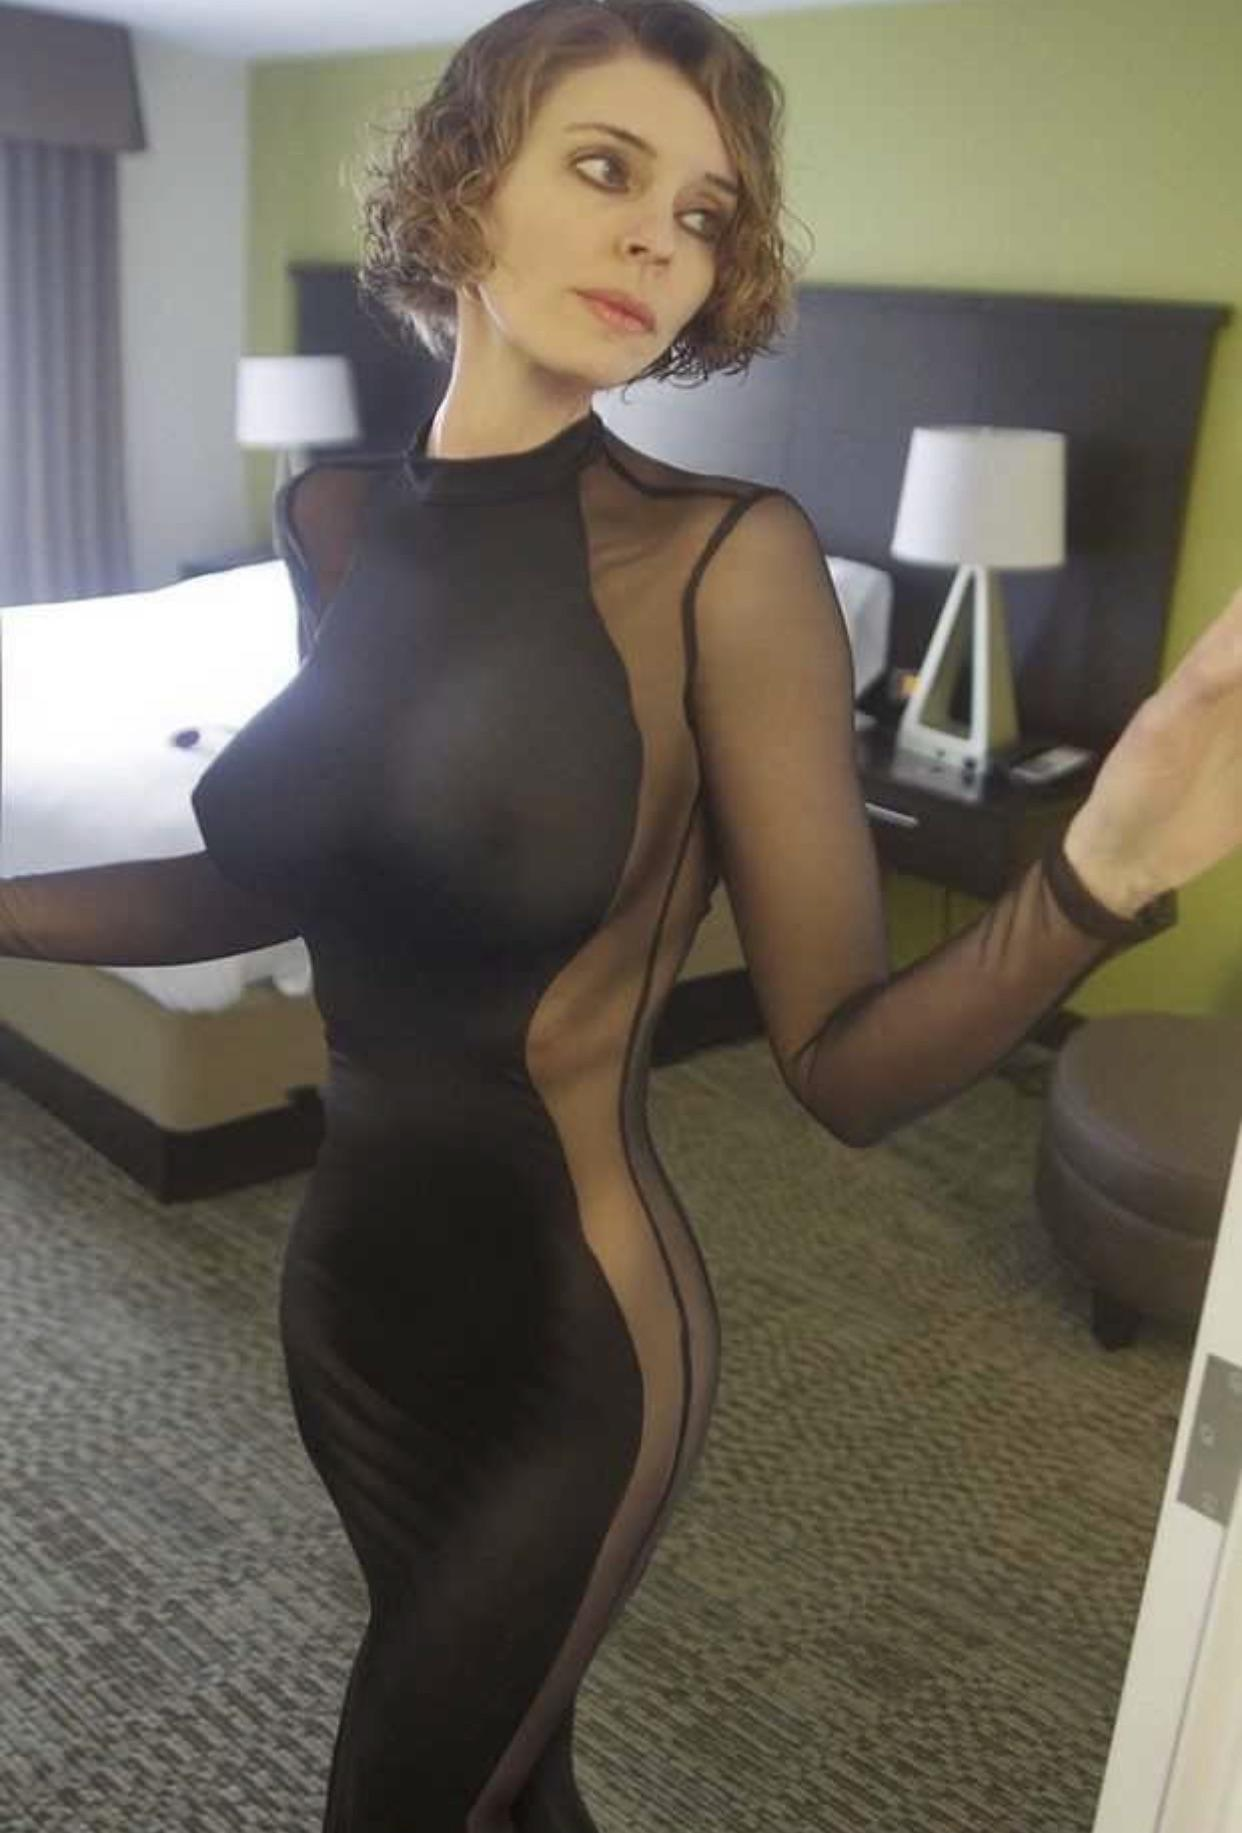 I'd Love To Be Her Date